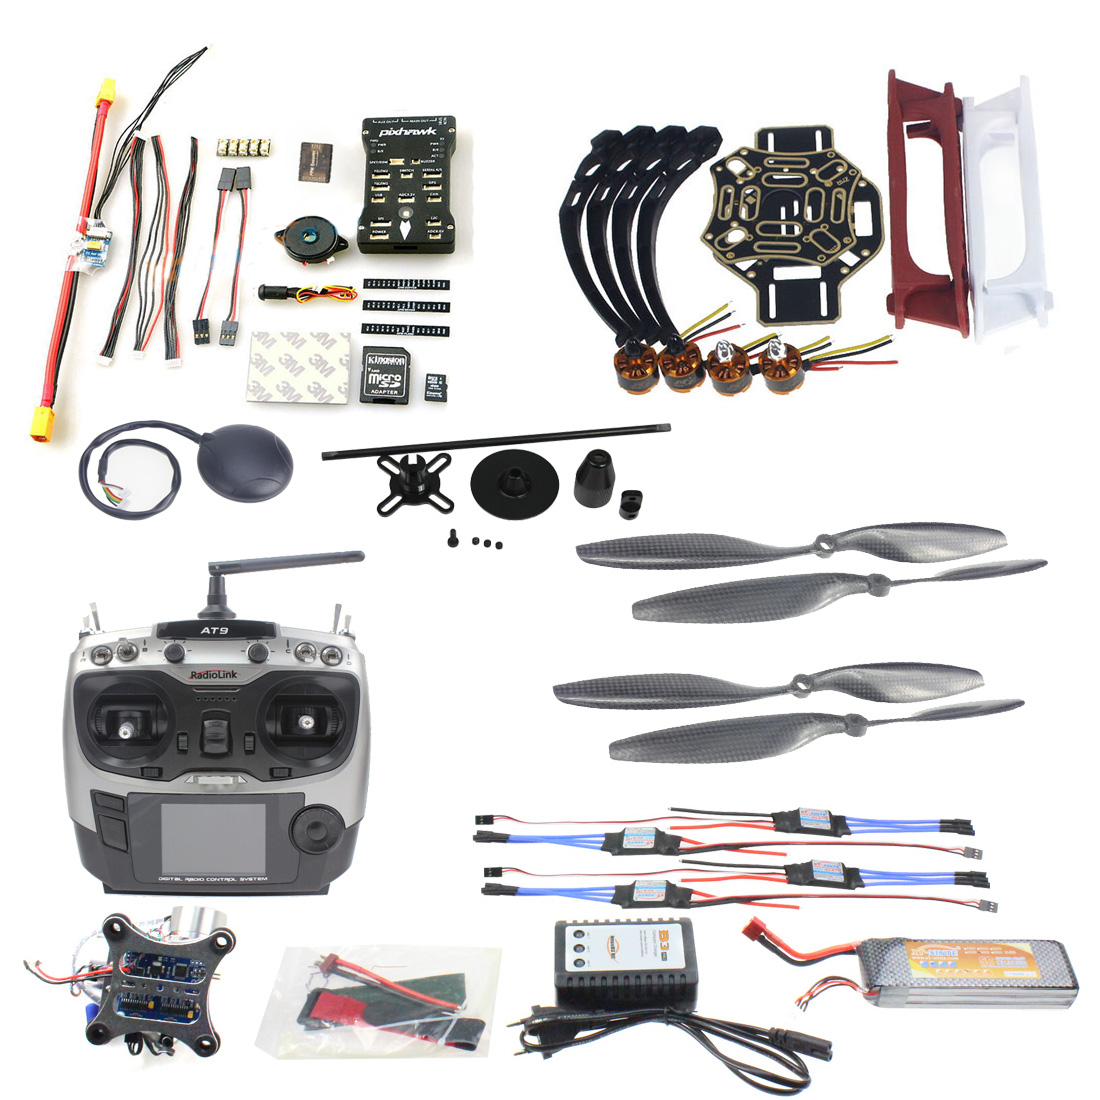 F02192-AE DIY FPV Drone Quadcopter 4-axle Aircraft Kit  F450 450 Frame PXI PX4 Flight Control 920KV Motor GPS  AT9 Transmitter f04305 sim900 gprs gsm development board kit quad band module for diy rc quadcopter drone fpv